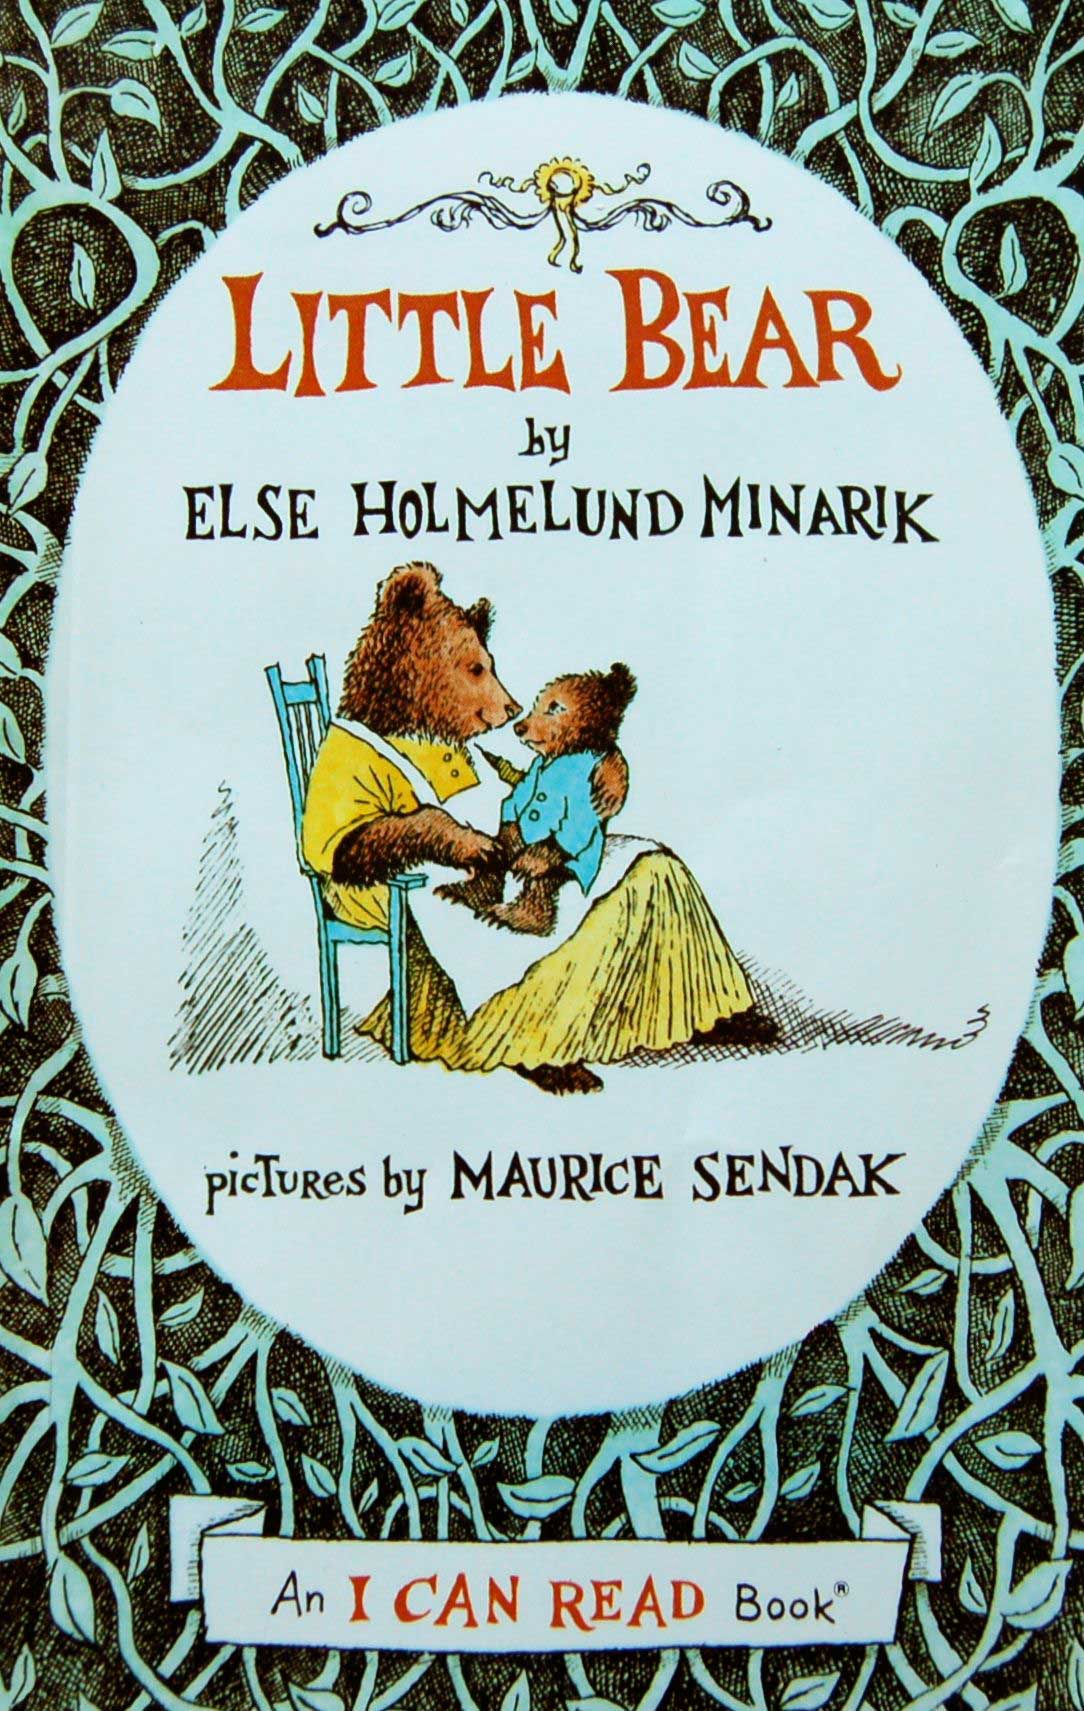 Little Bear (series), by Else Holmelund Minarek, illustrations by Maurice Sendak.                                                                                                                            Minarik wrote these stories,  which convey a young cub's yearning for his absent father, but it's Sendak's illustrations that catch the eye and allow for endless imaginings of life among woodland critters.                                                                                                                            Buy now: Little Bear (series)